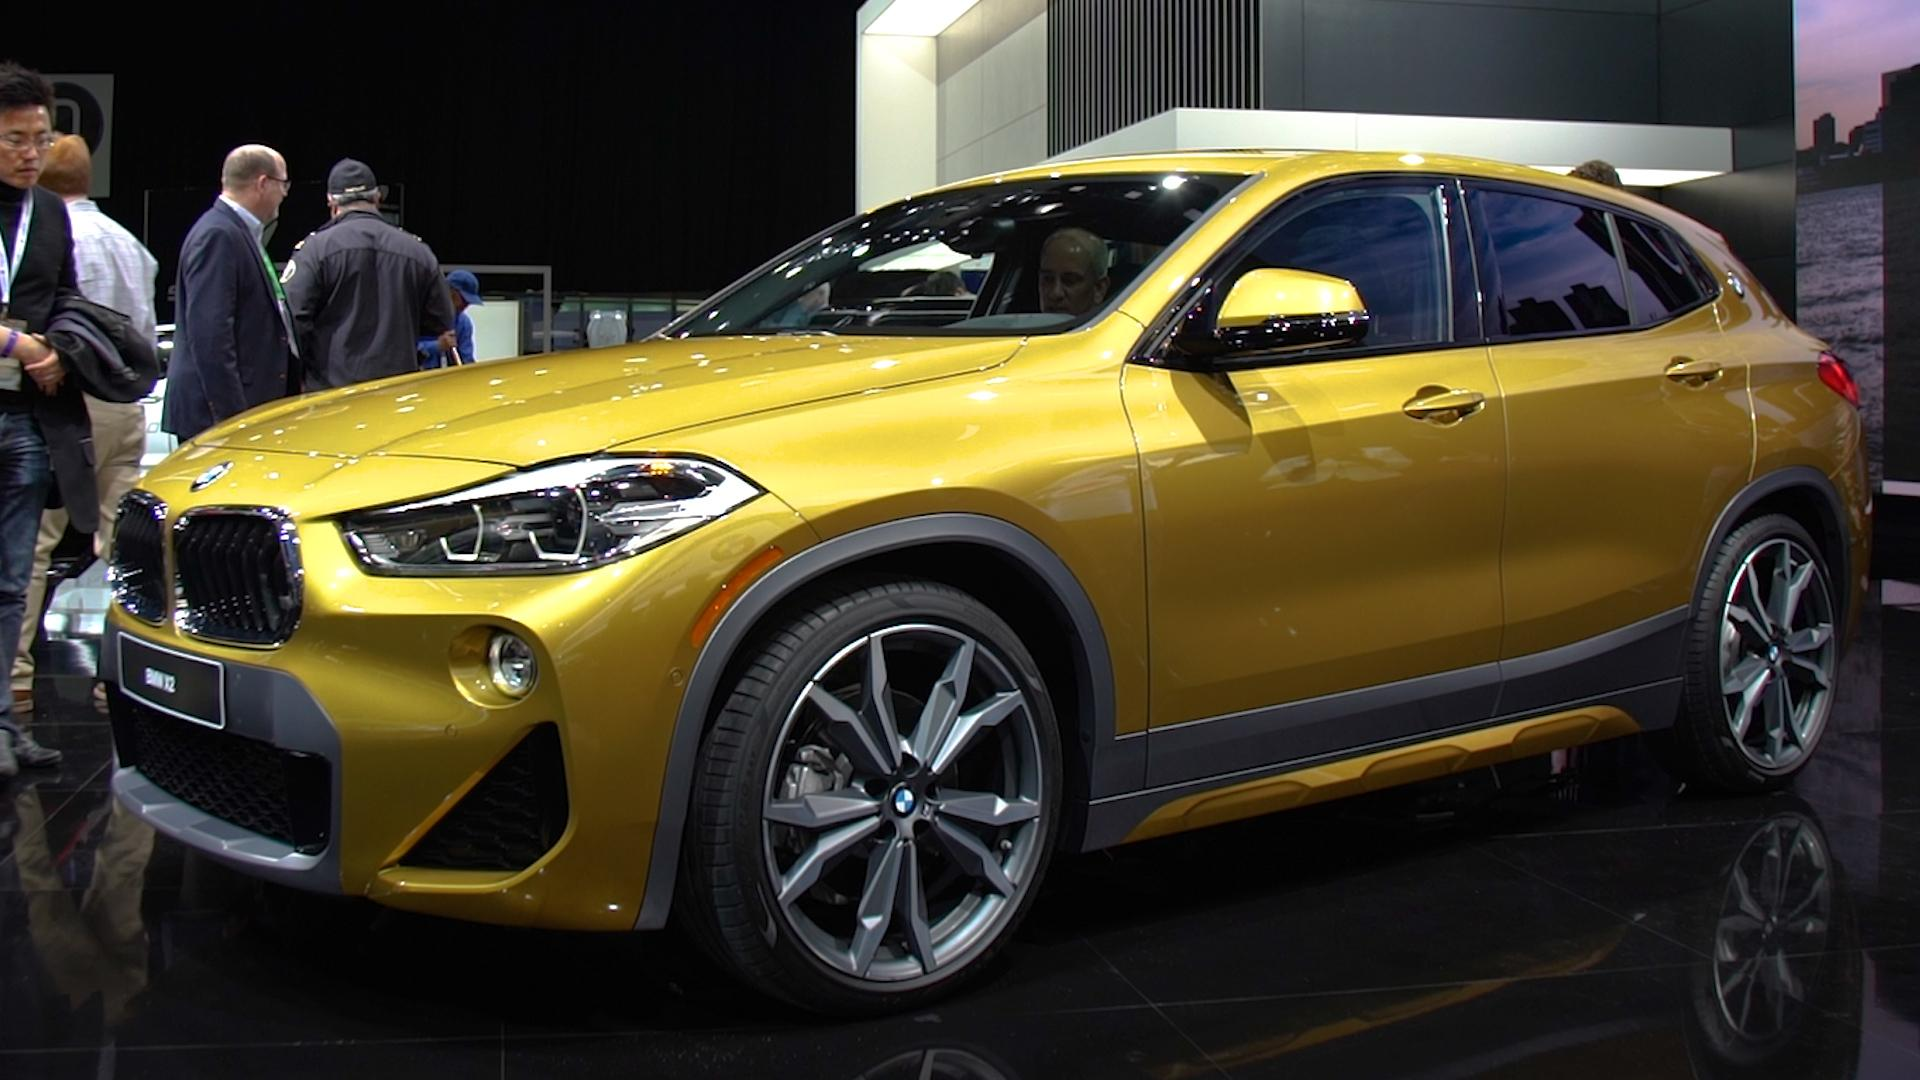 2018 BMW X2 is Smaller, Sportier Take on X1 SUV - Consumer